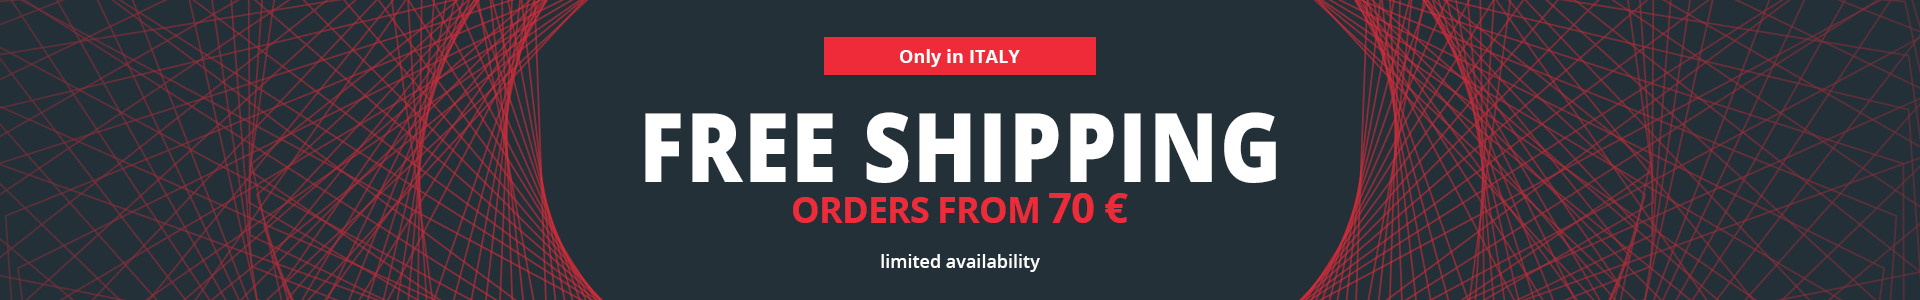 free shipping in Italy from order 70 euro